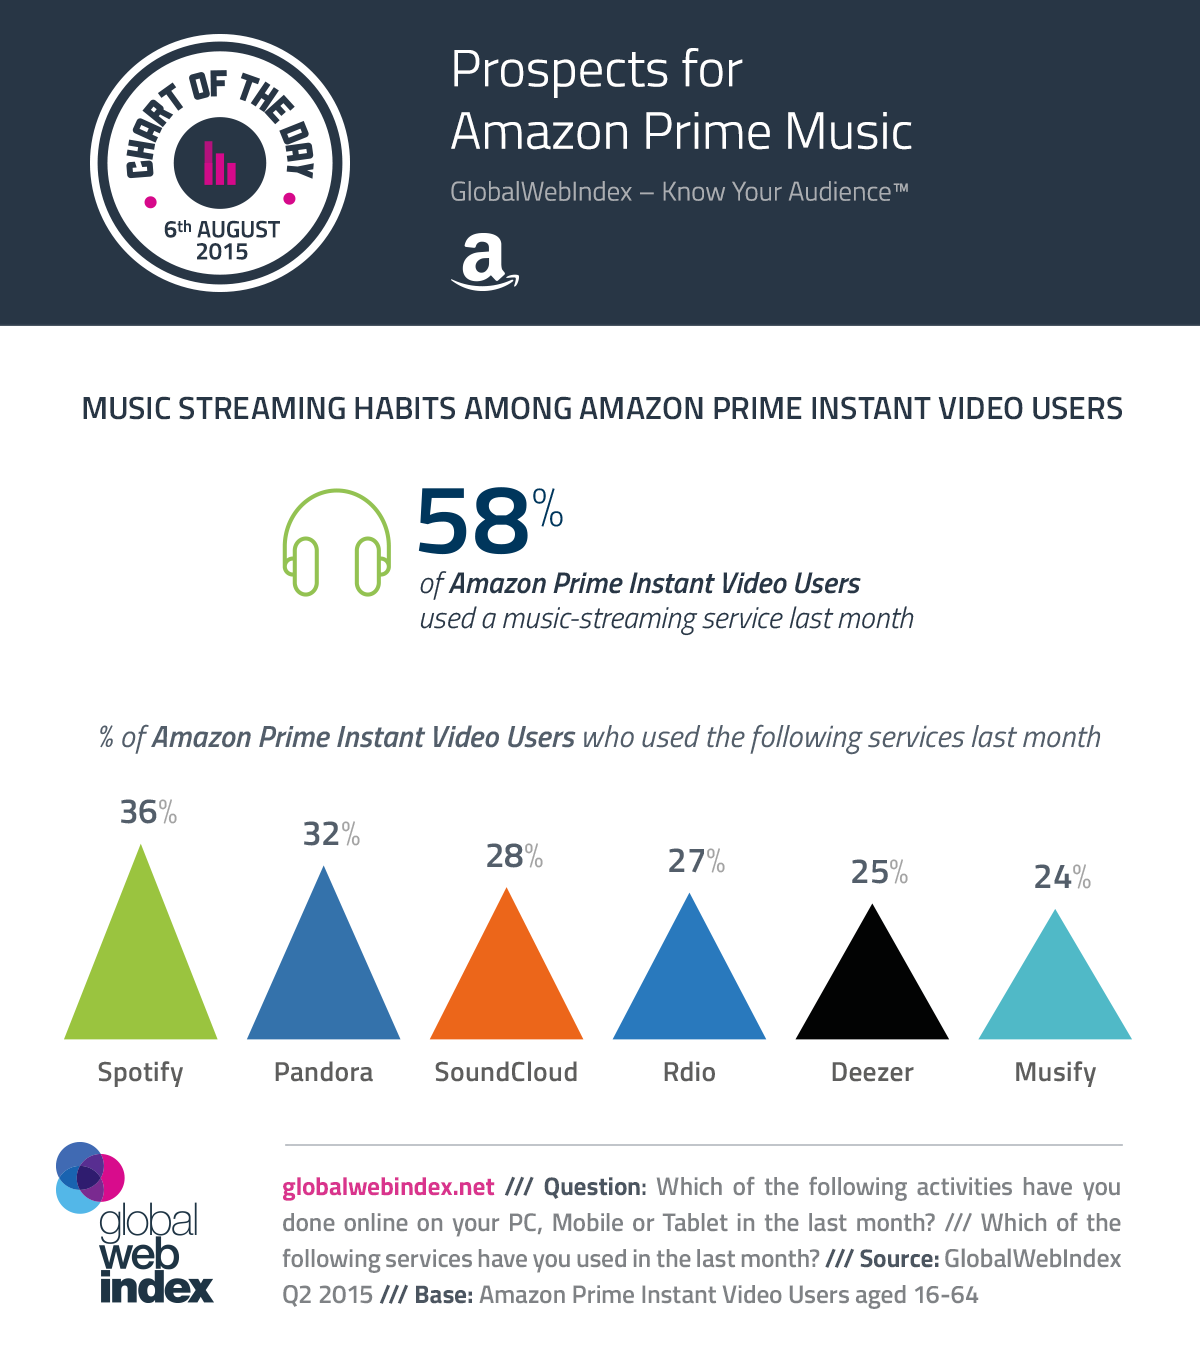 6th-Aug-2015-Prospects-for-Amazon-Prime-Music